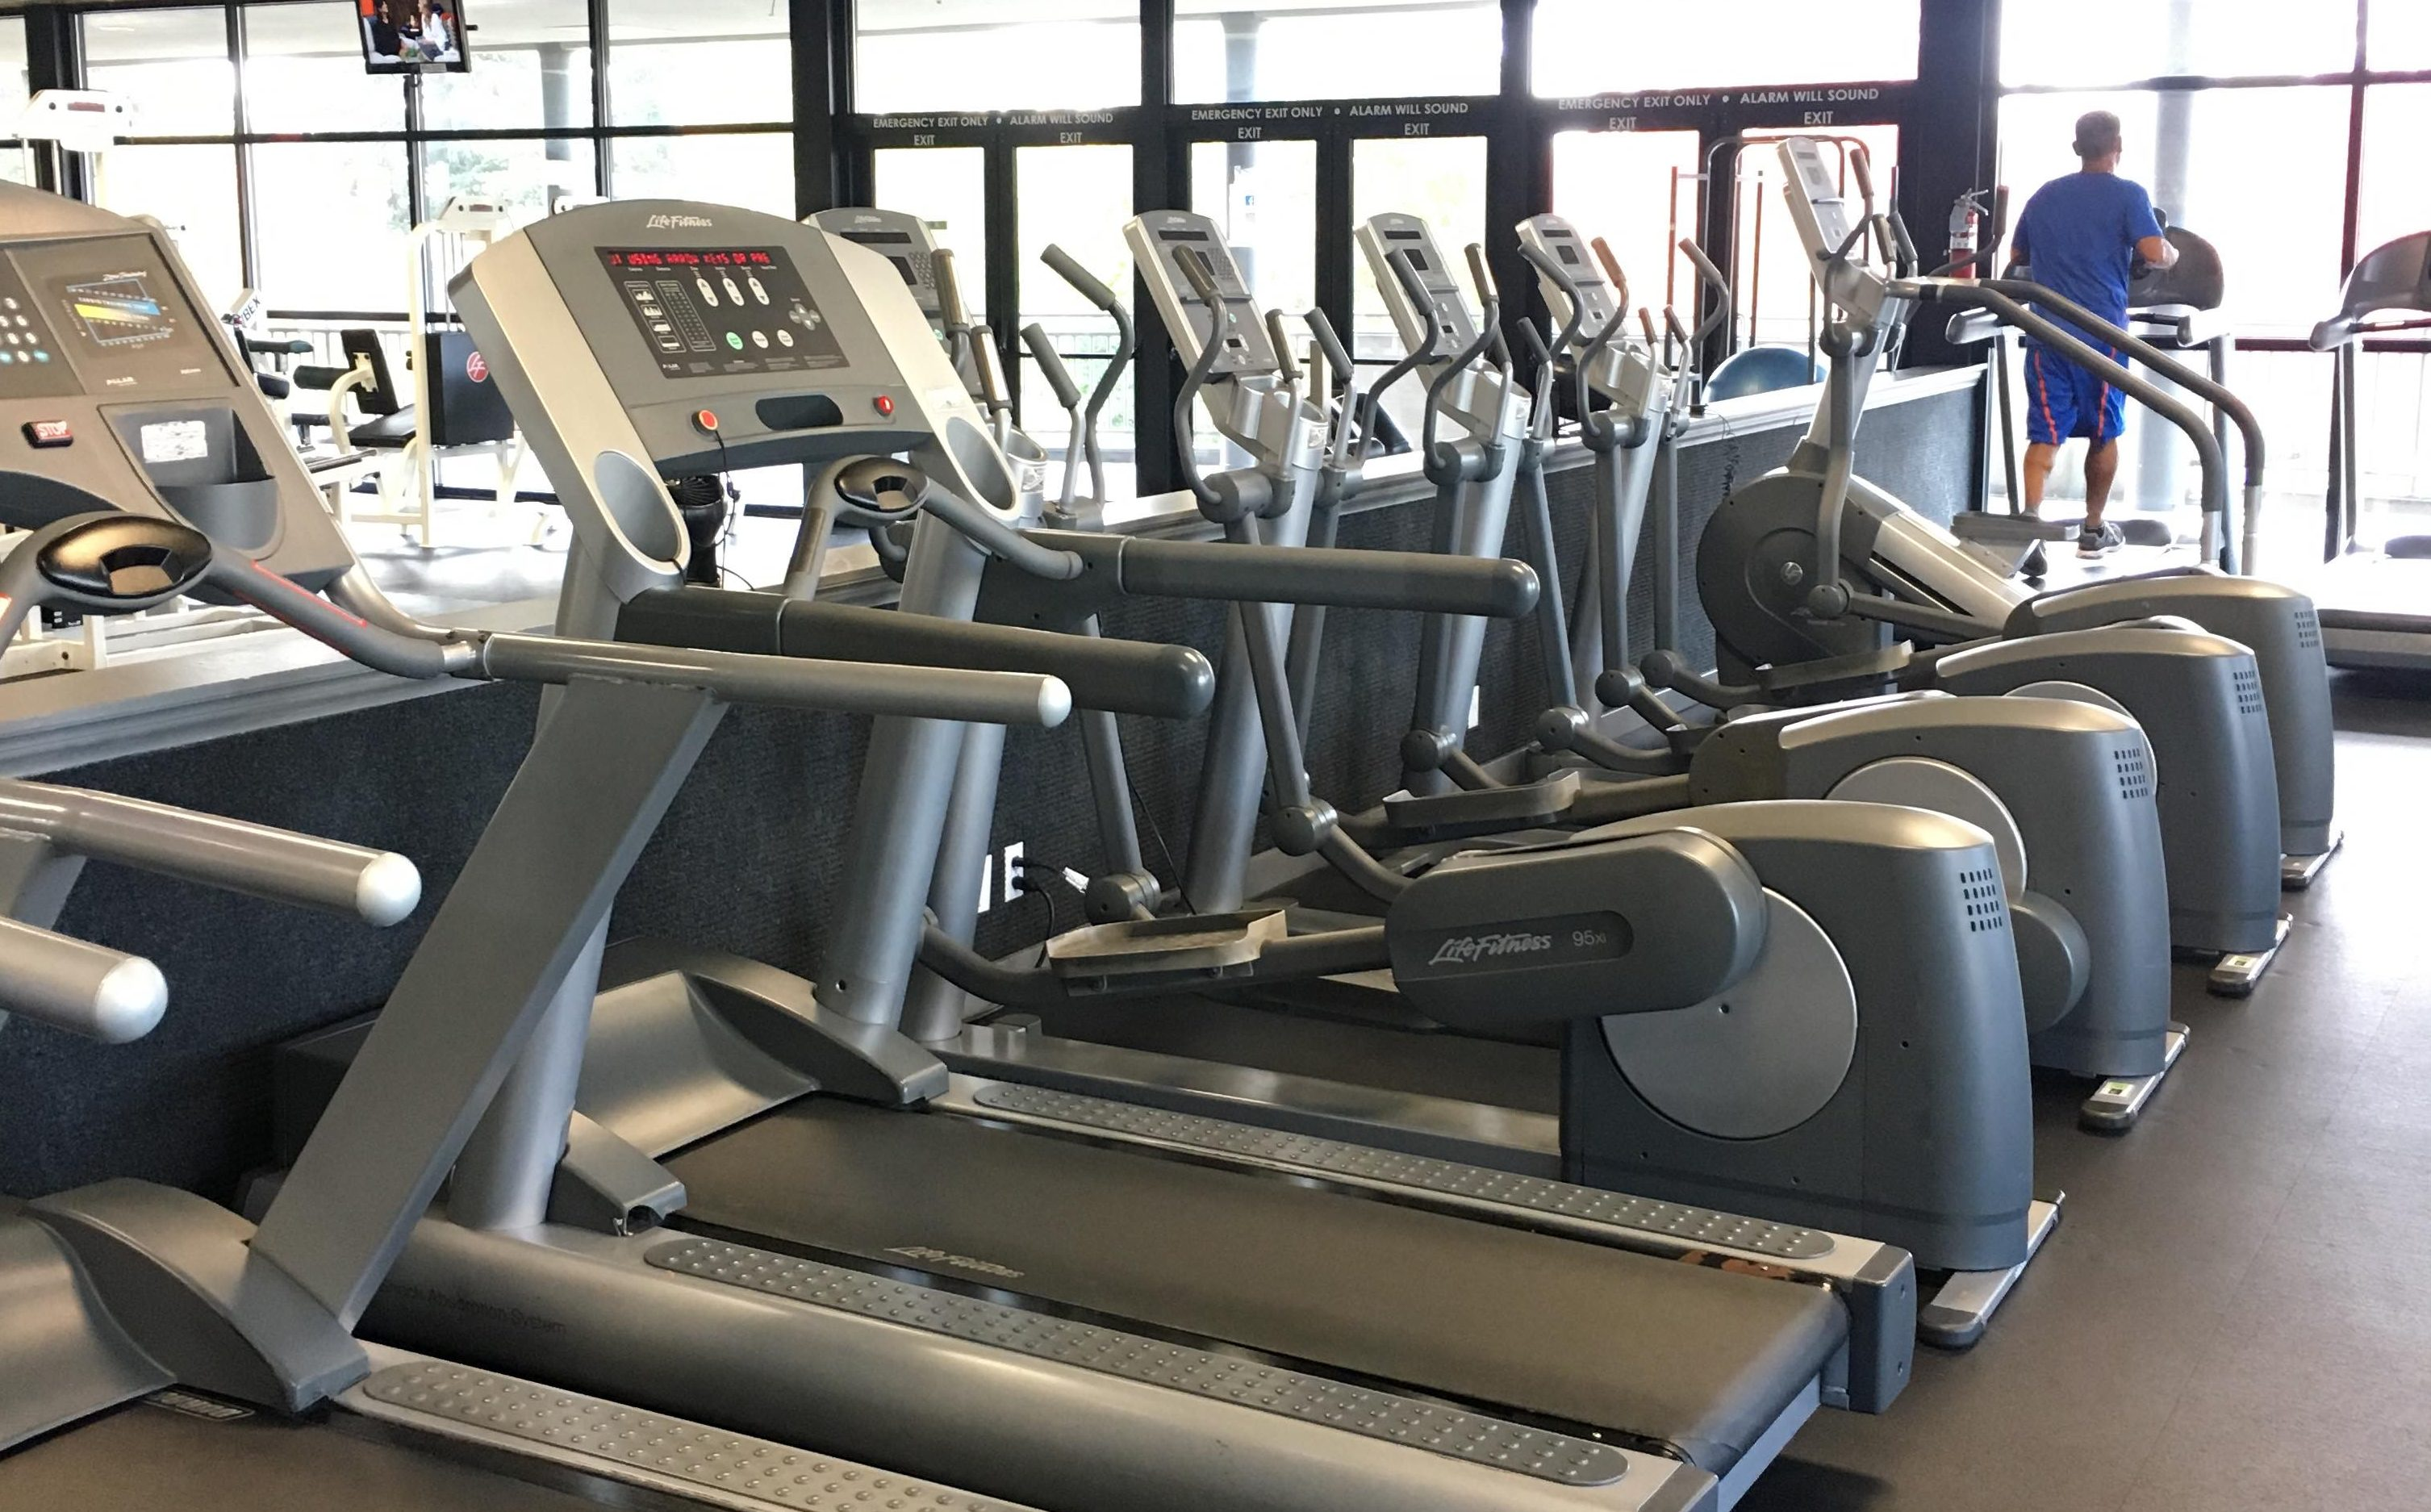 Make 2019 Count At City Gym In Bellingham Whatcomtalk